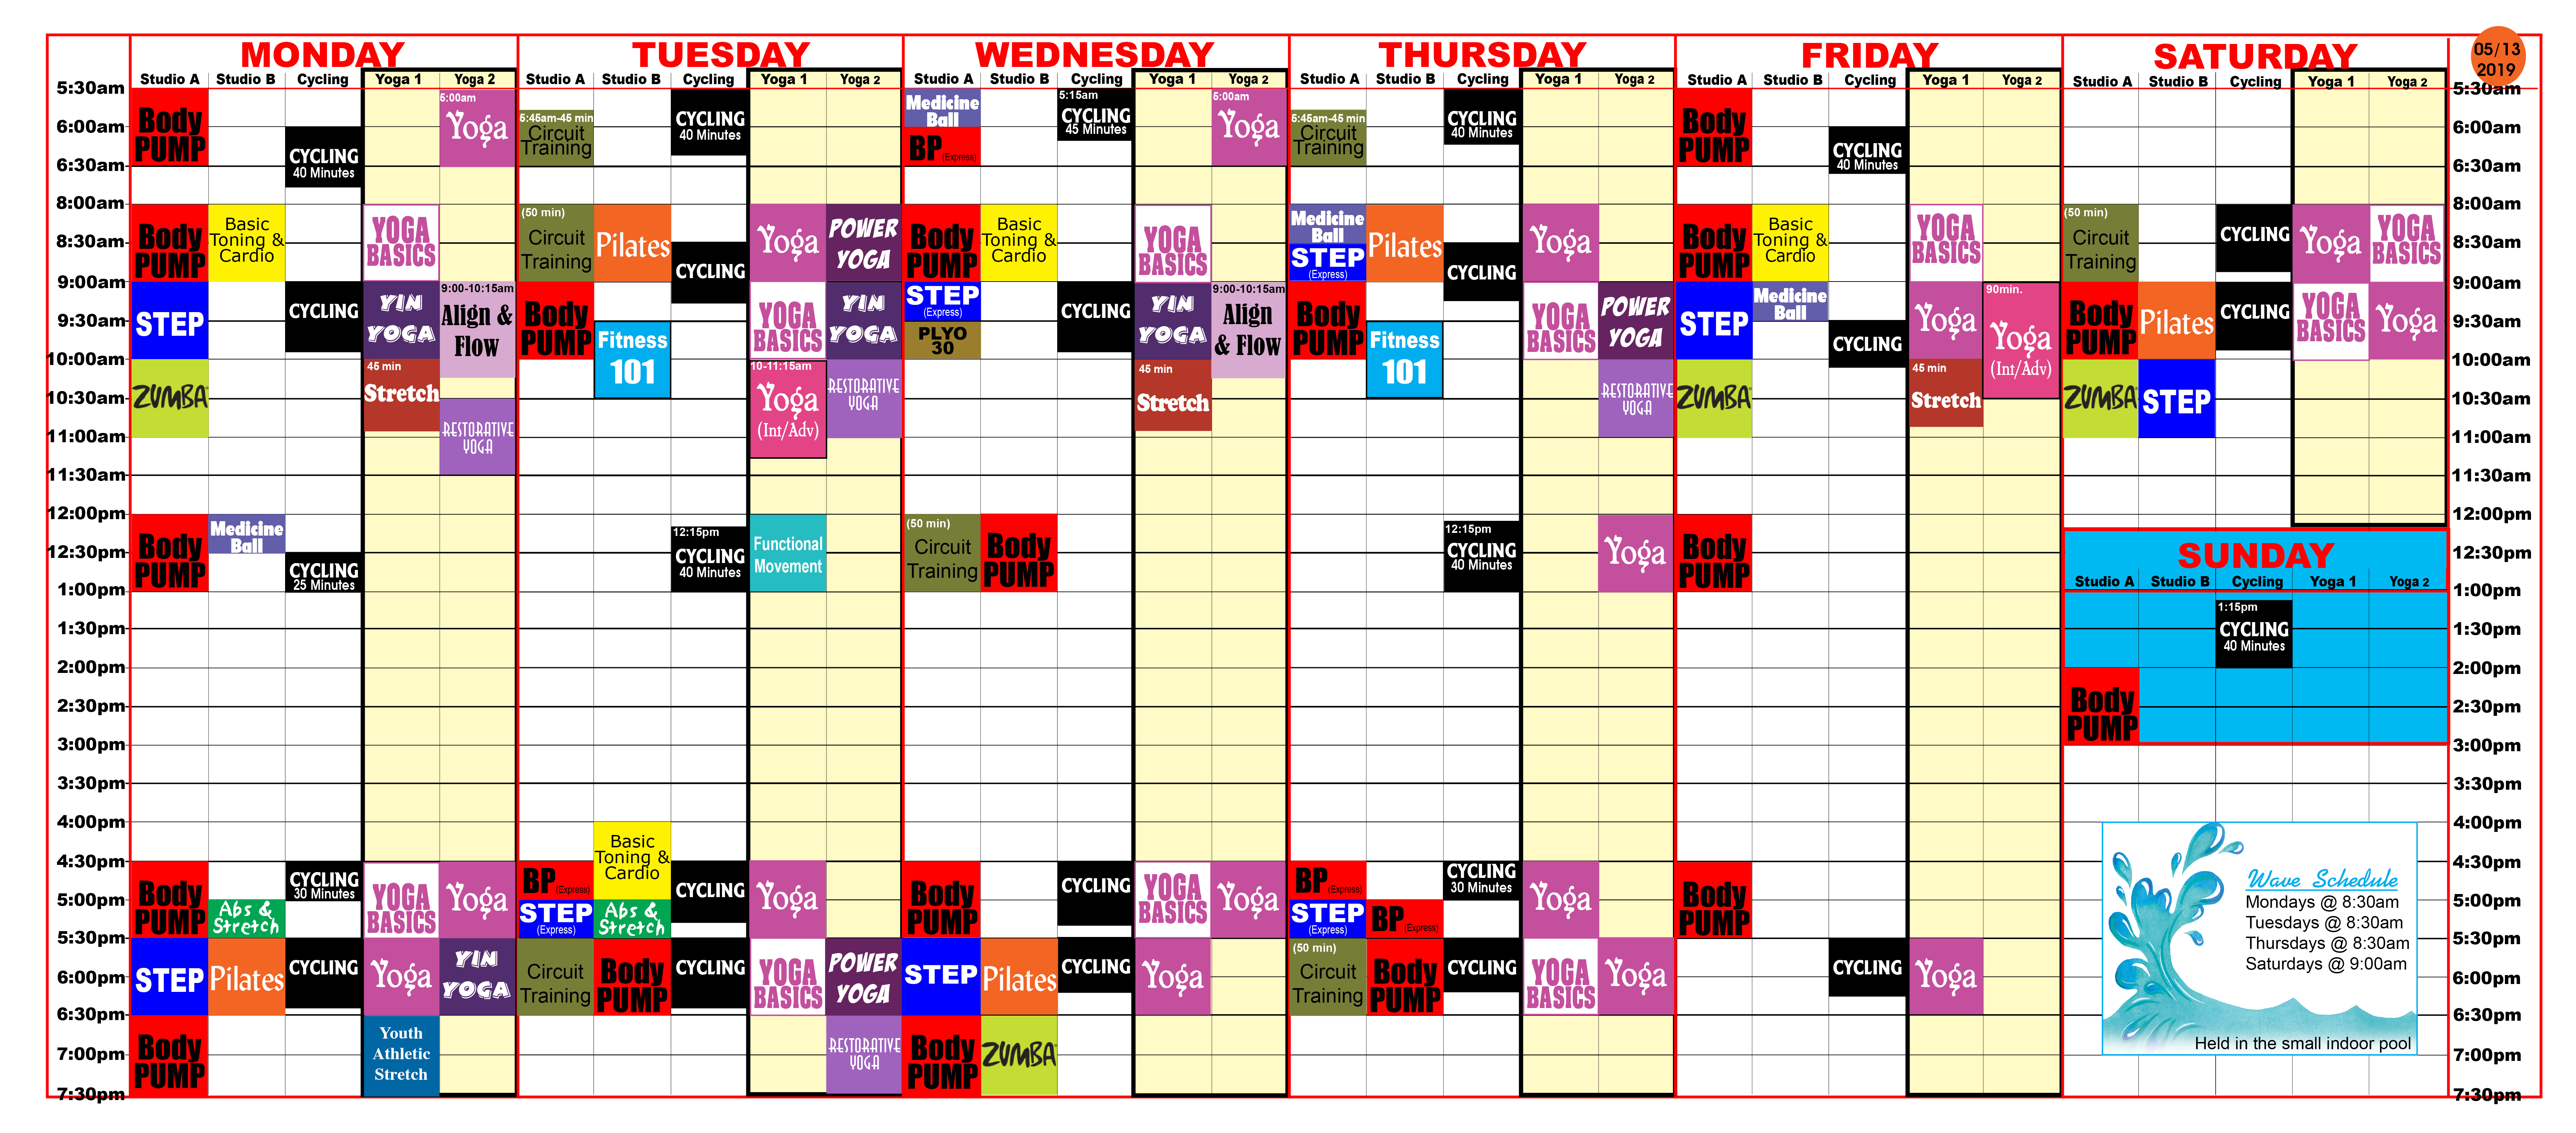 Group Fitness schedule at Red's 0513/19.